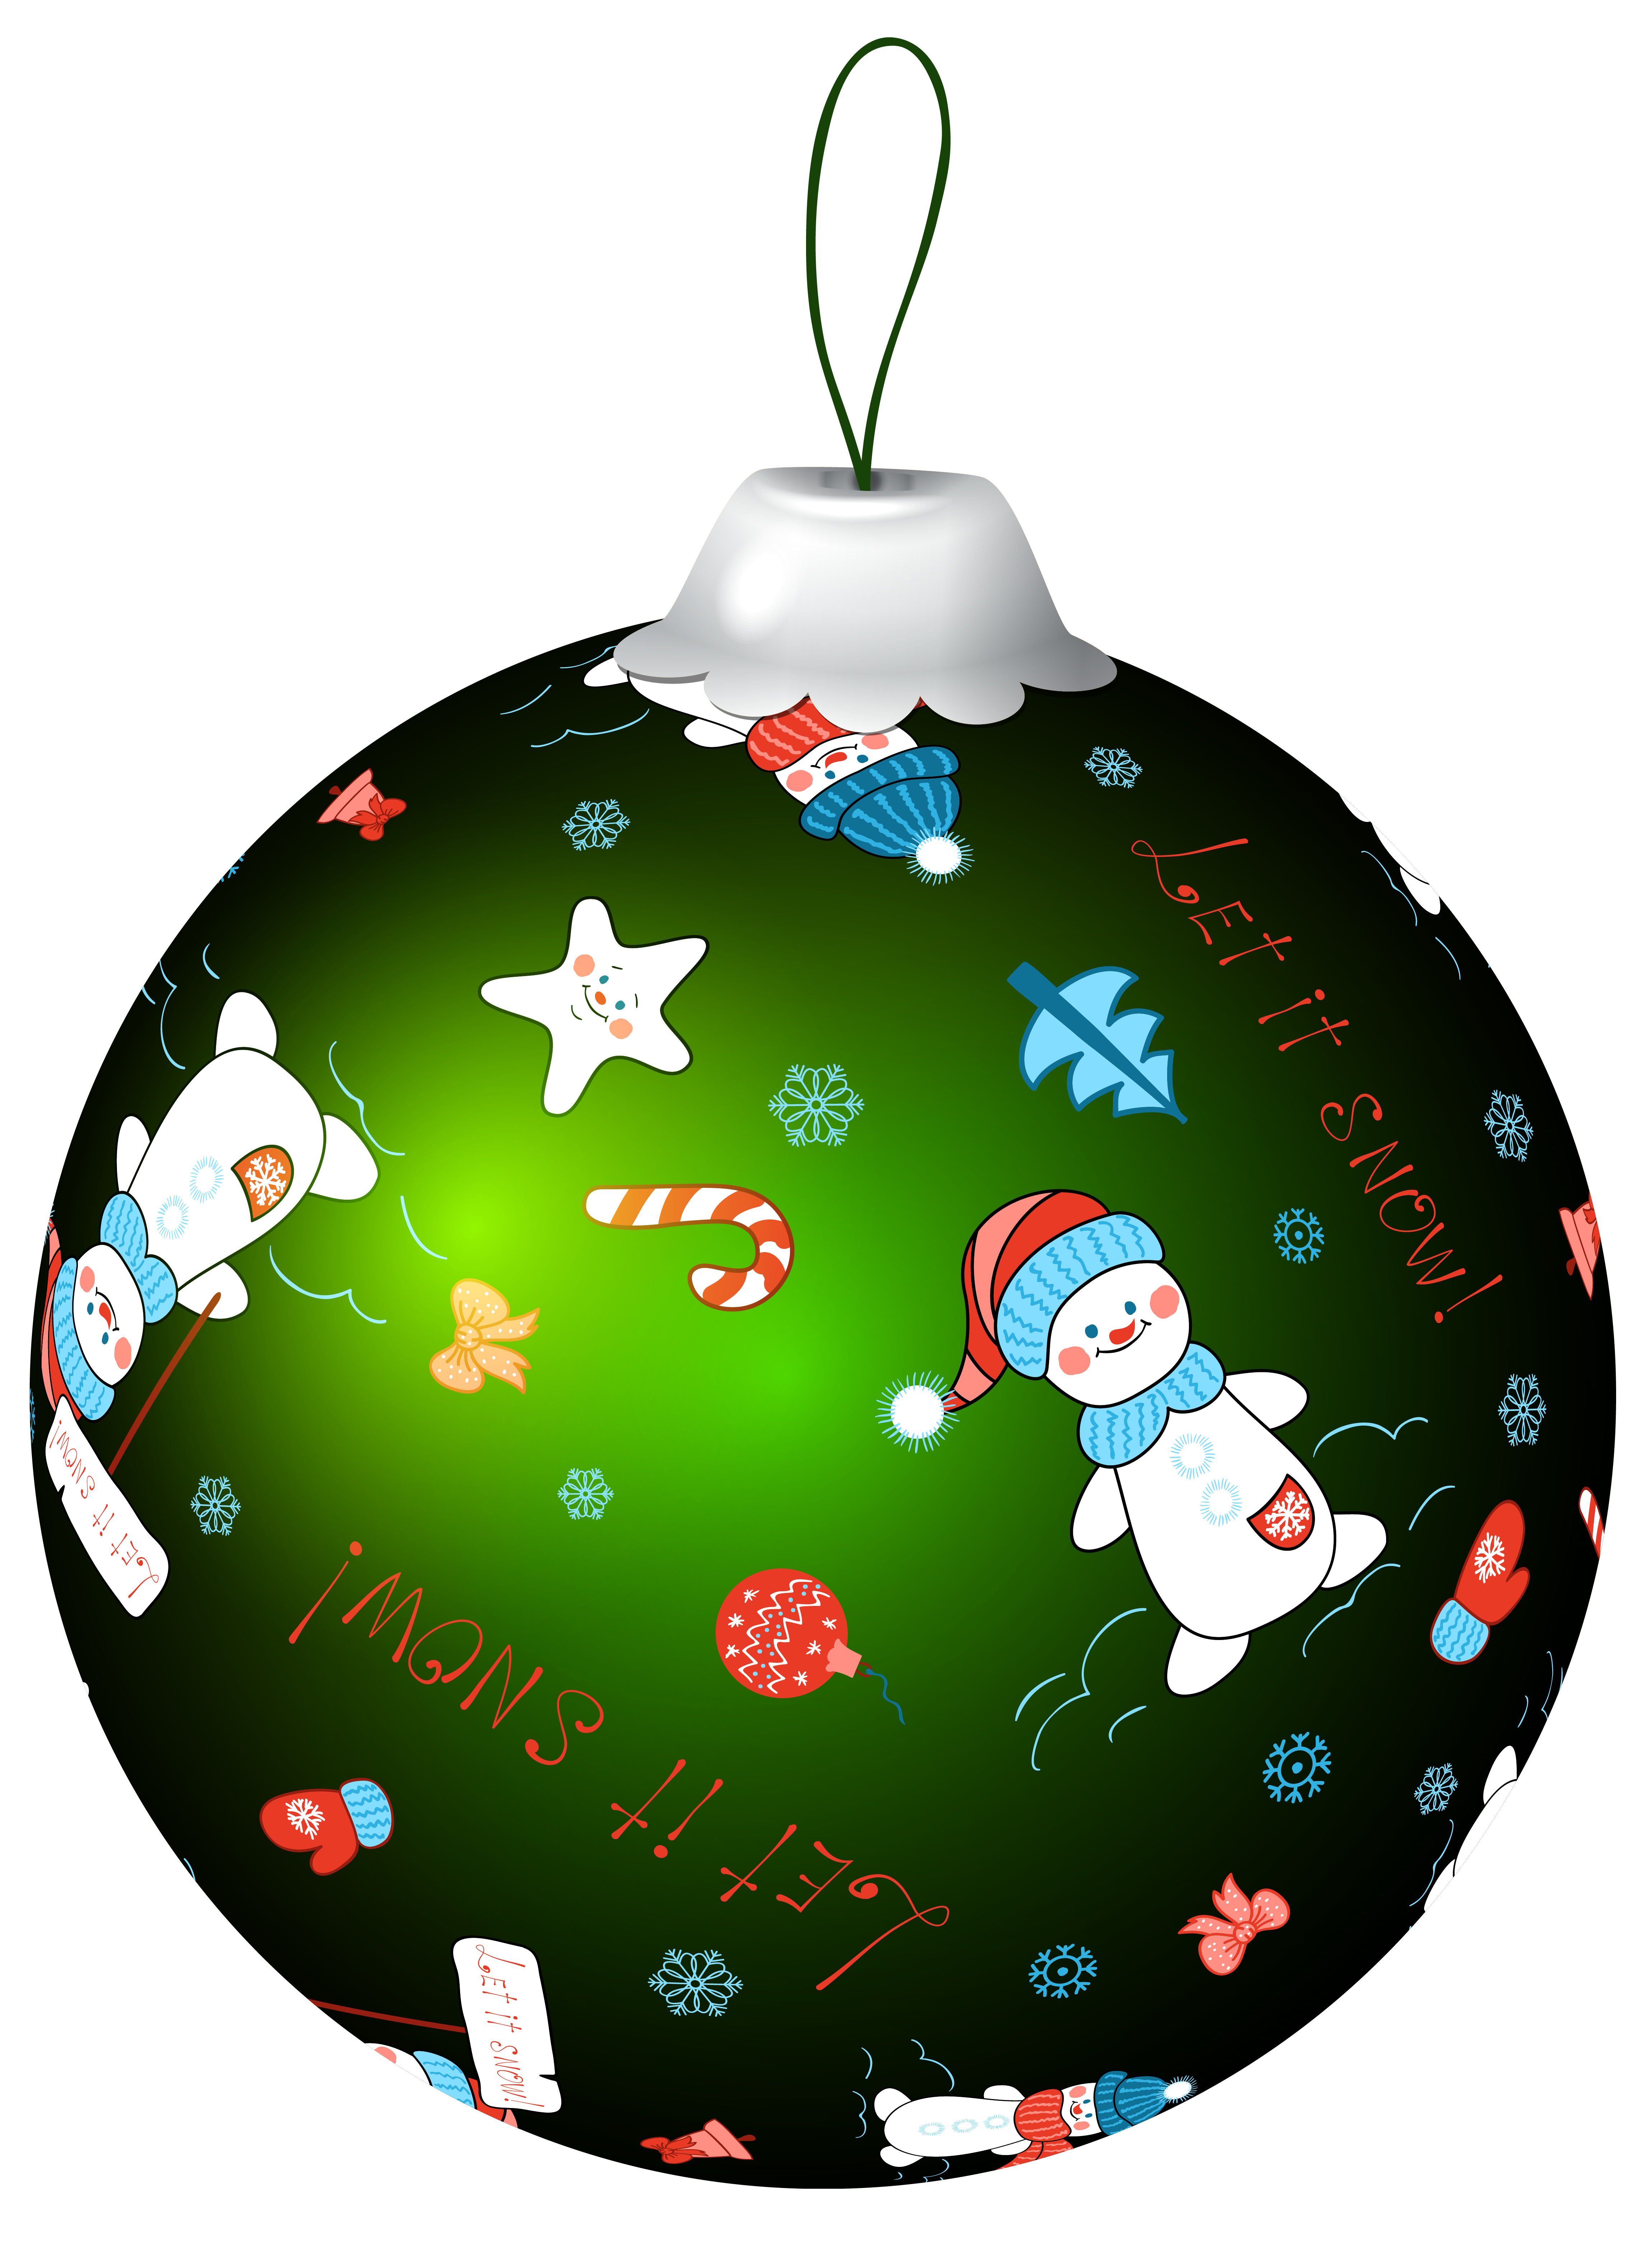 Green christmas ornament clipart picture freeuse stock Green Christmas Ball with Snowman PNG Clip Art Image | Gallery ... picture freeuse stock